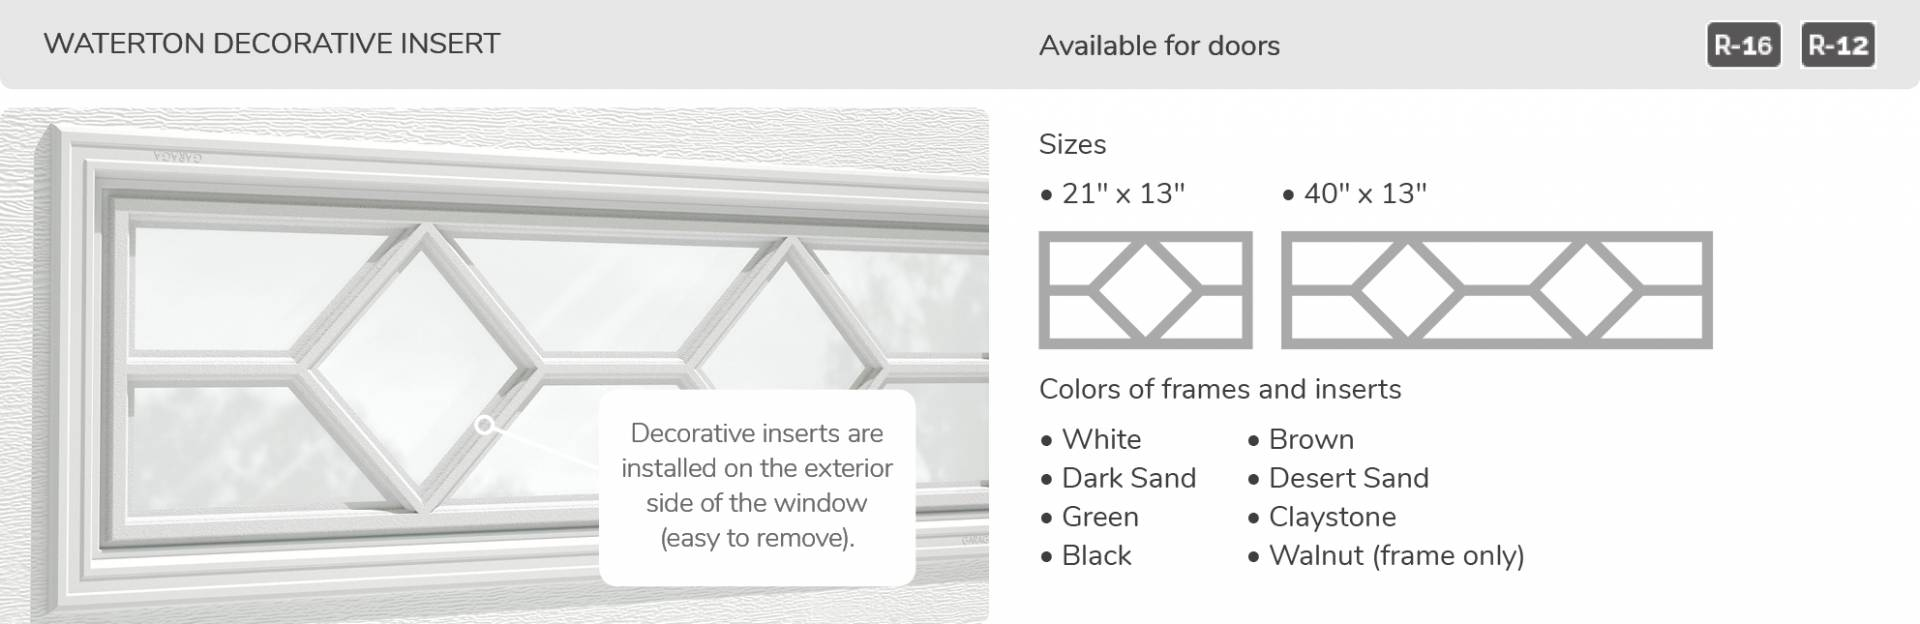 Waterton Decorative Insert, 21' x 13' and 40' x 13', available for door R-16 and R-12